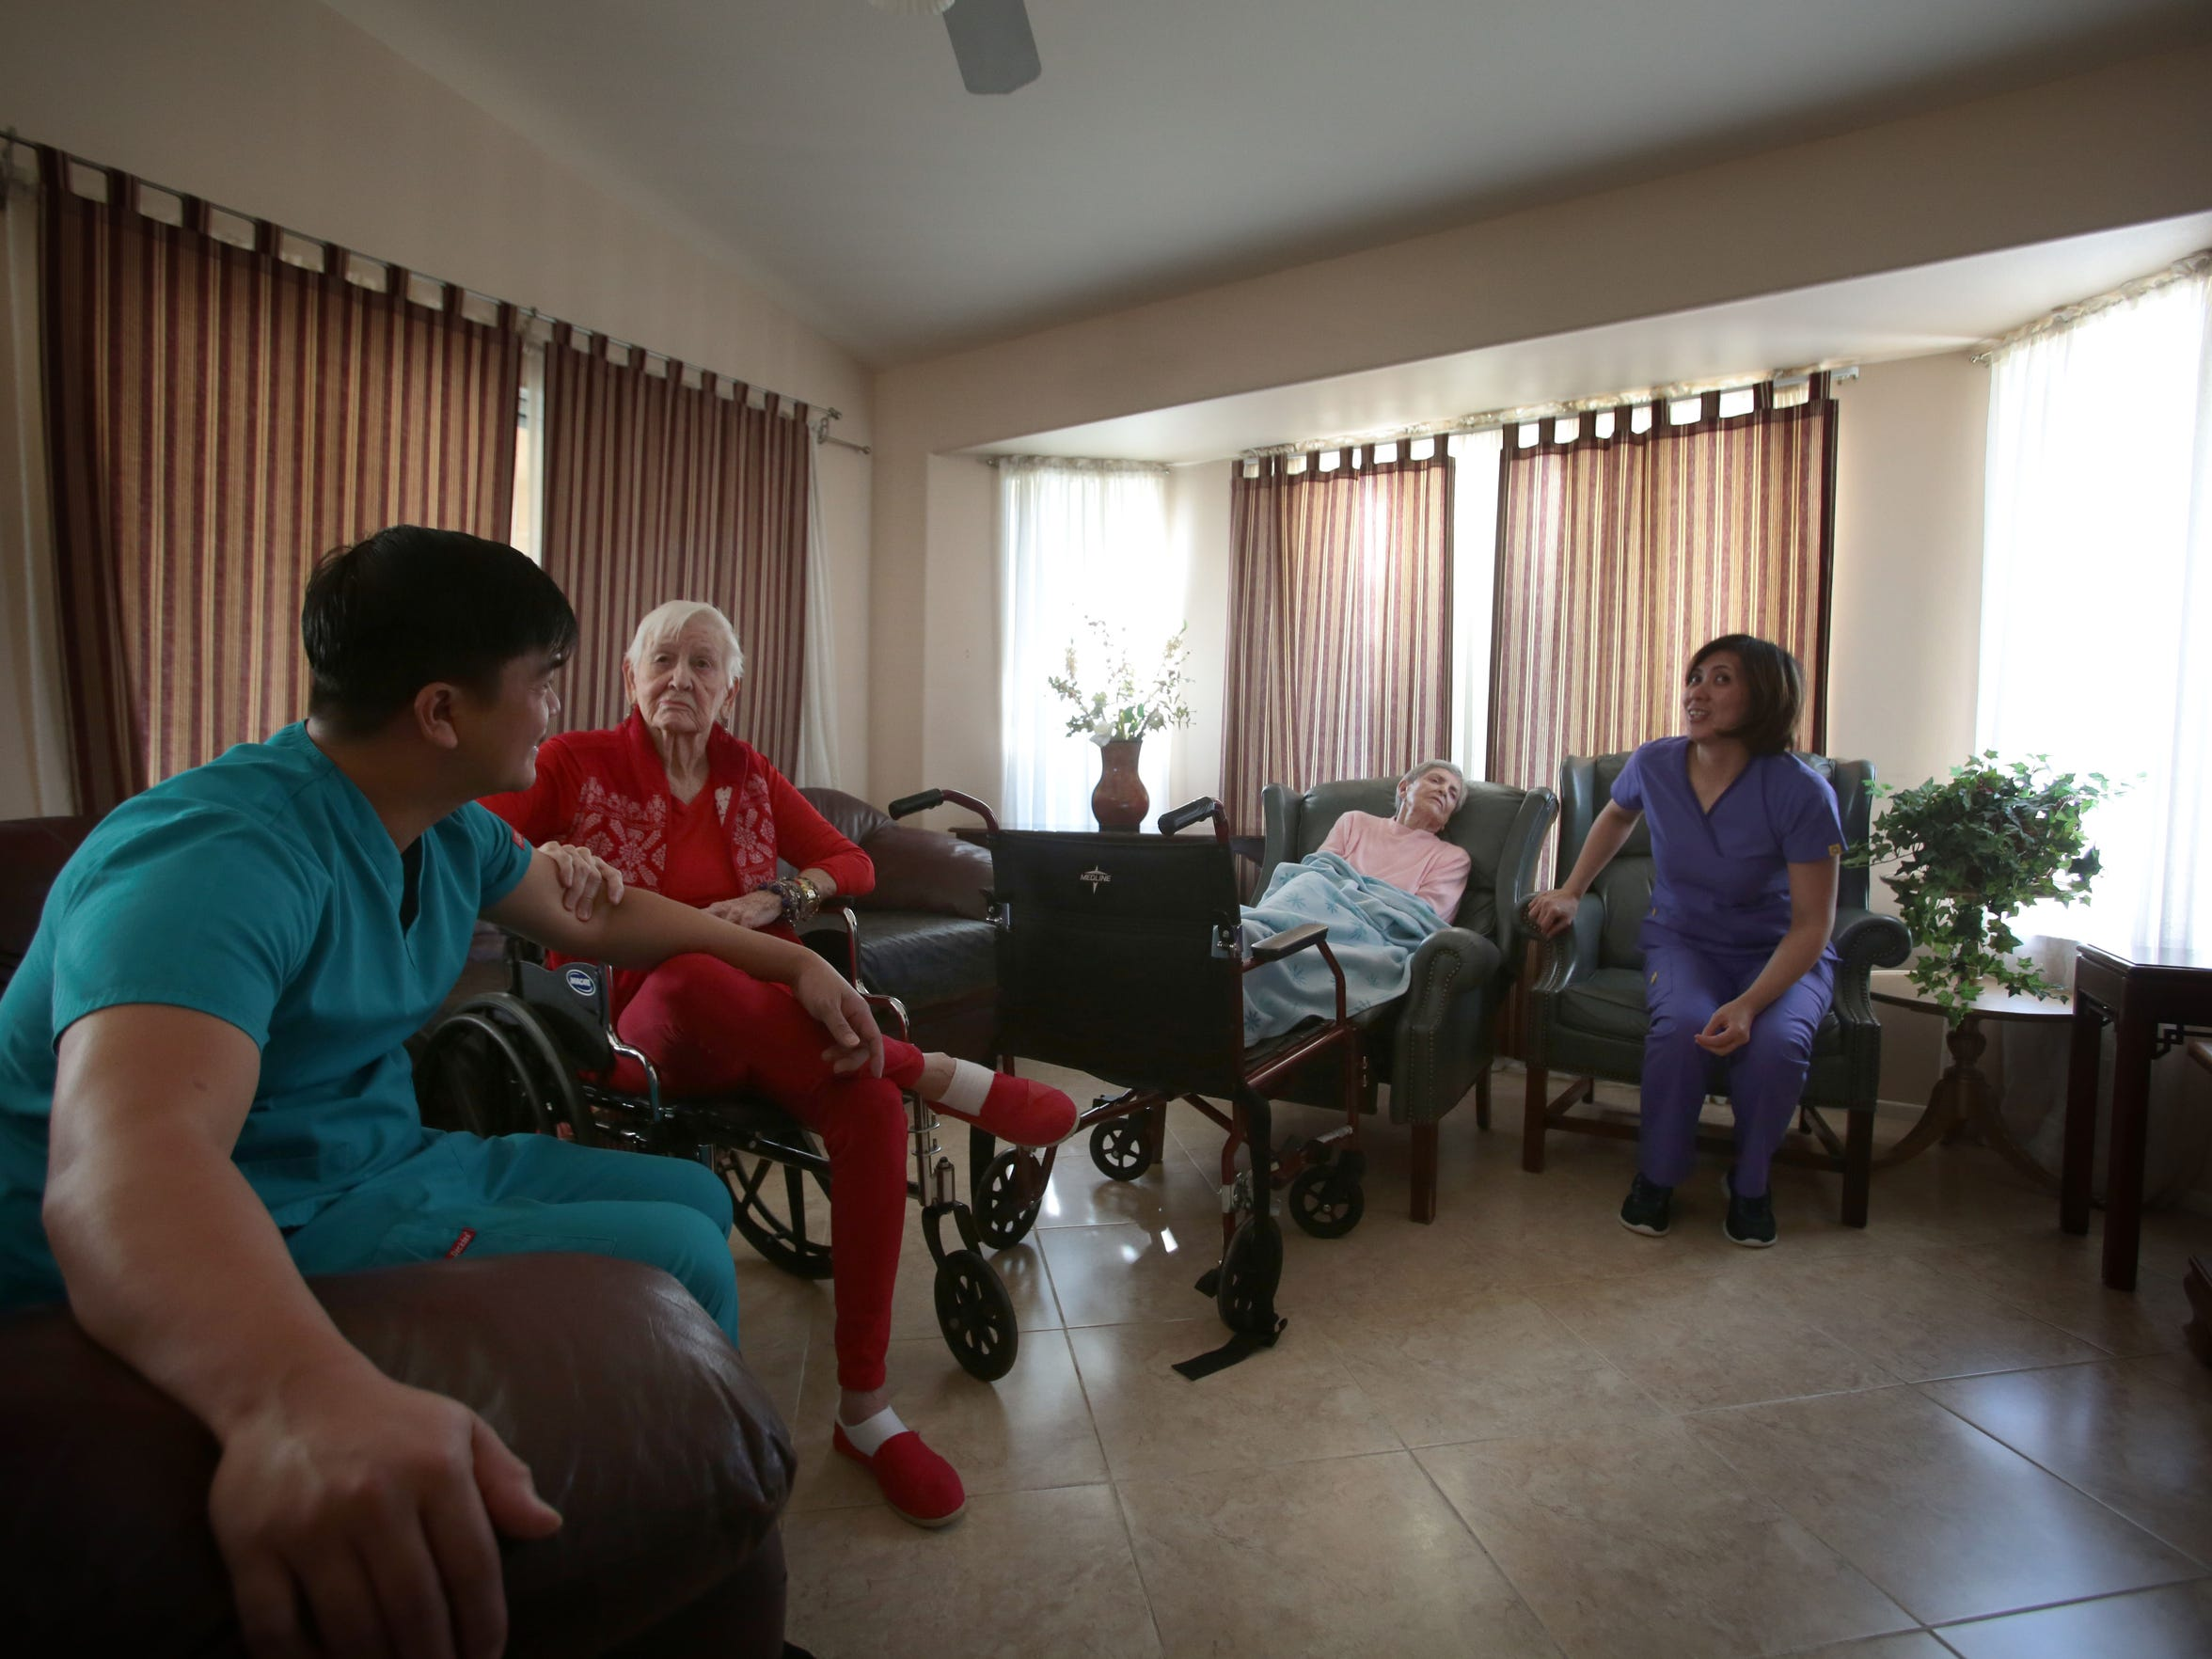 Staff members with residents at a residential assisted living facility in Indio on Friday, February 19, 2016.